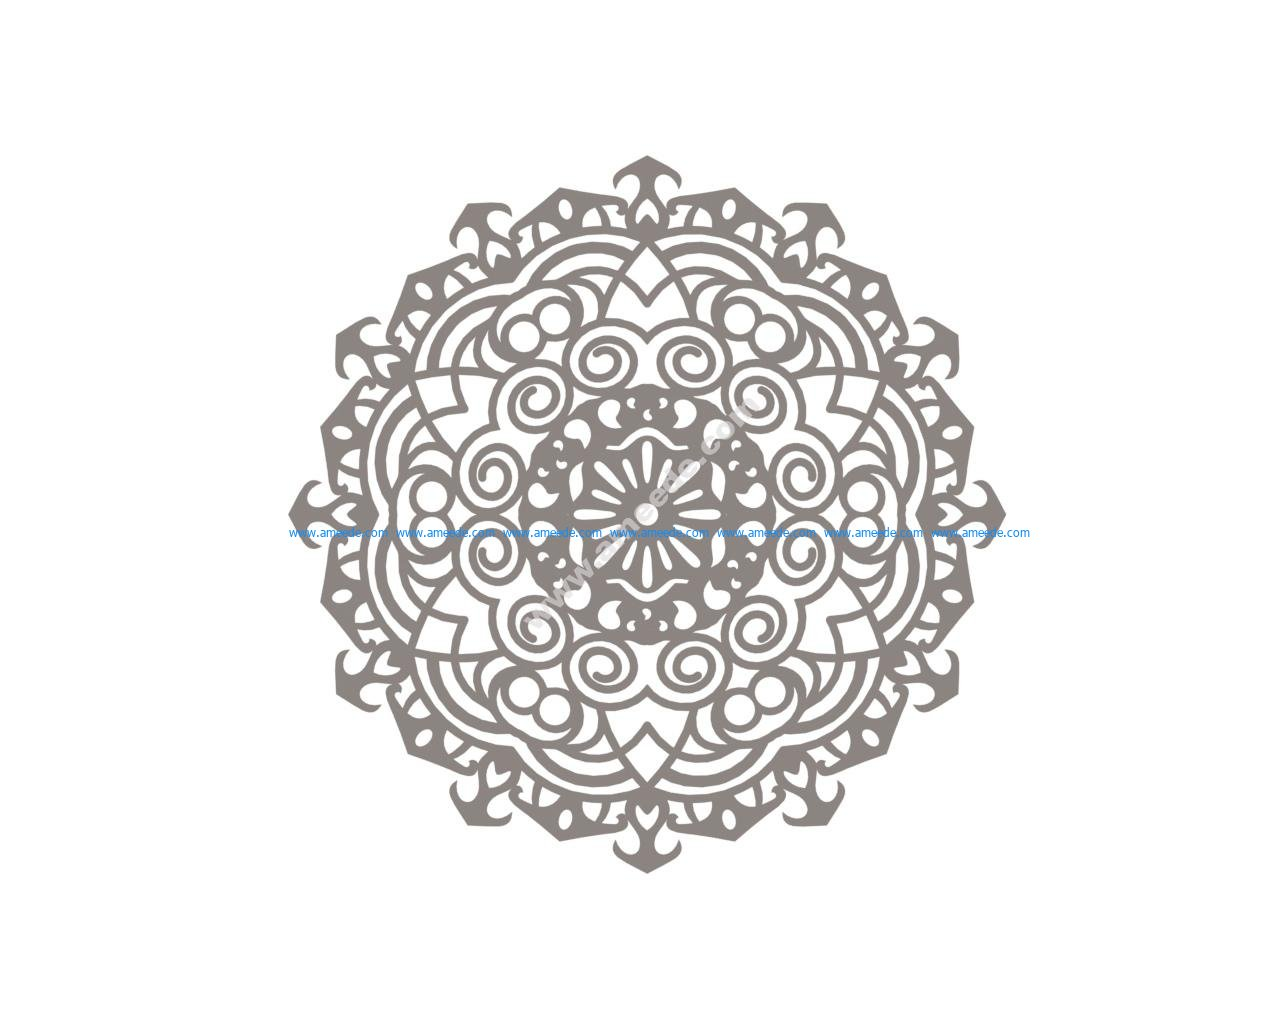 Mandala design drawing vector